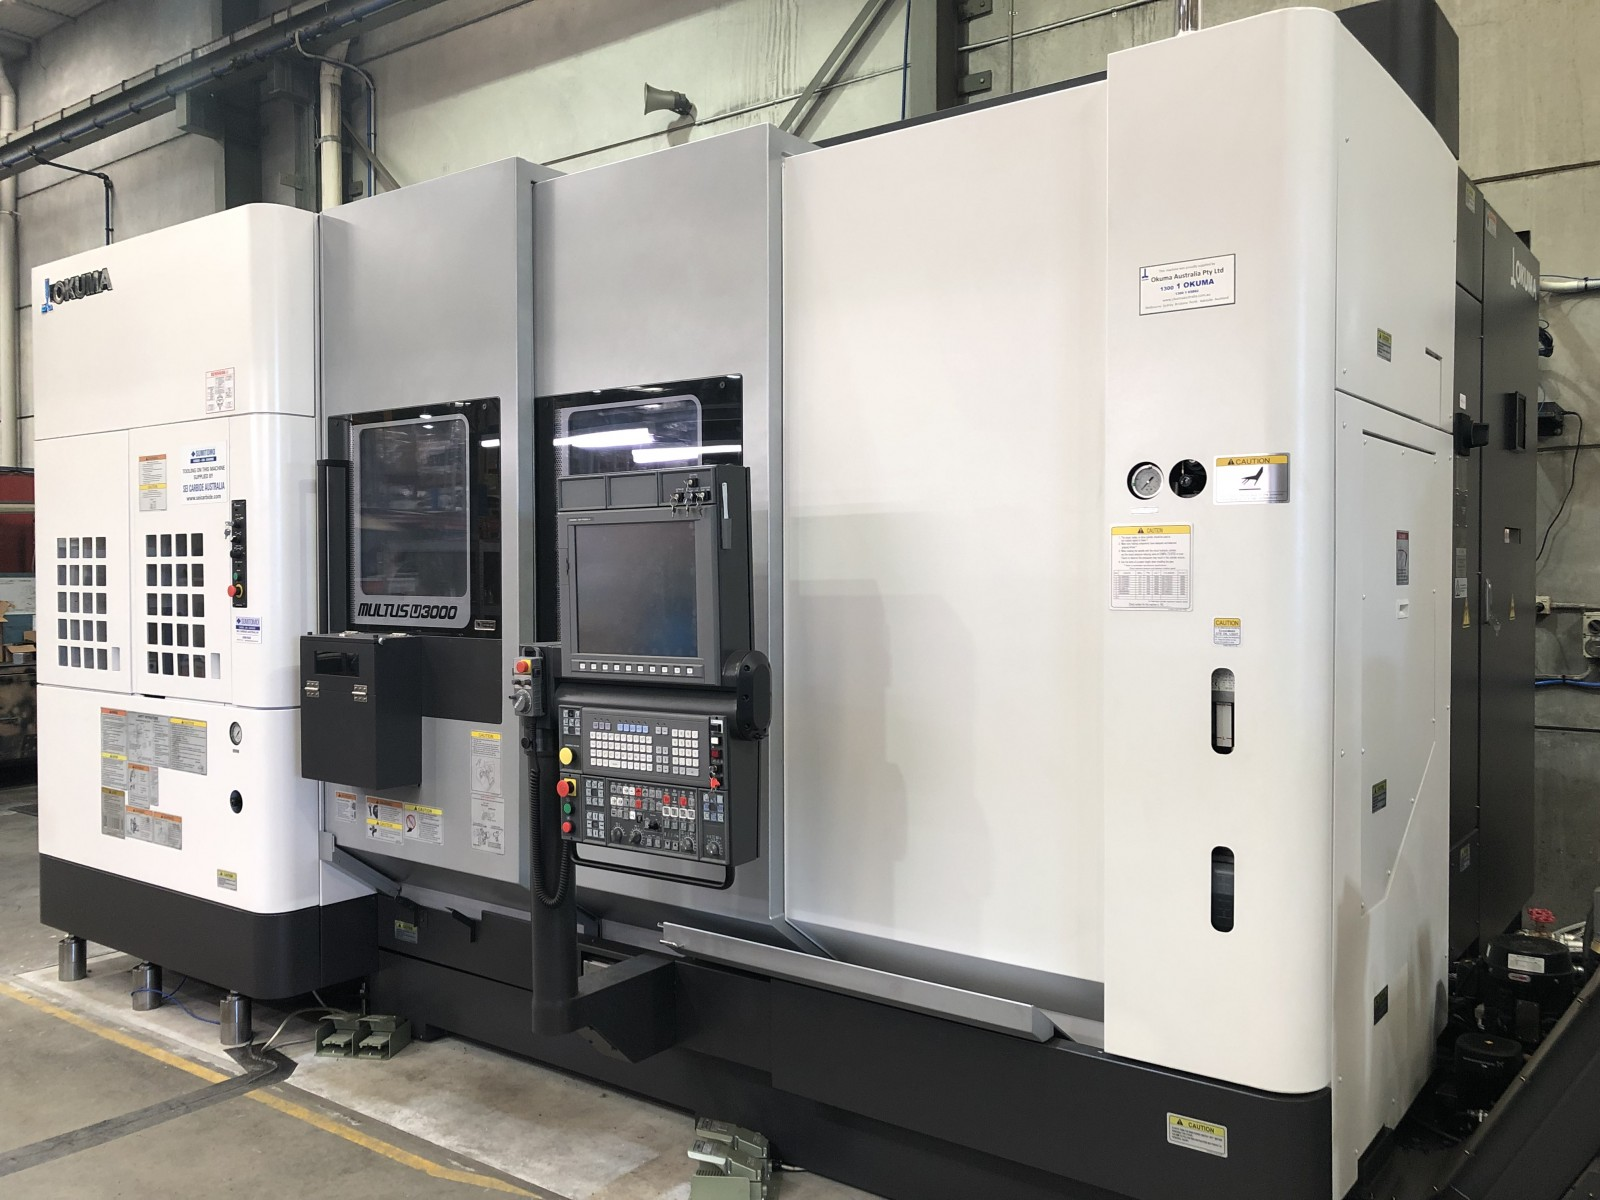 New generation of CNC Machine arrived at W&E Platt